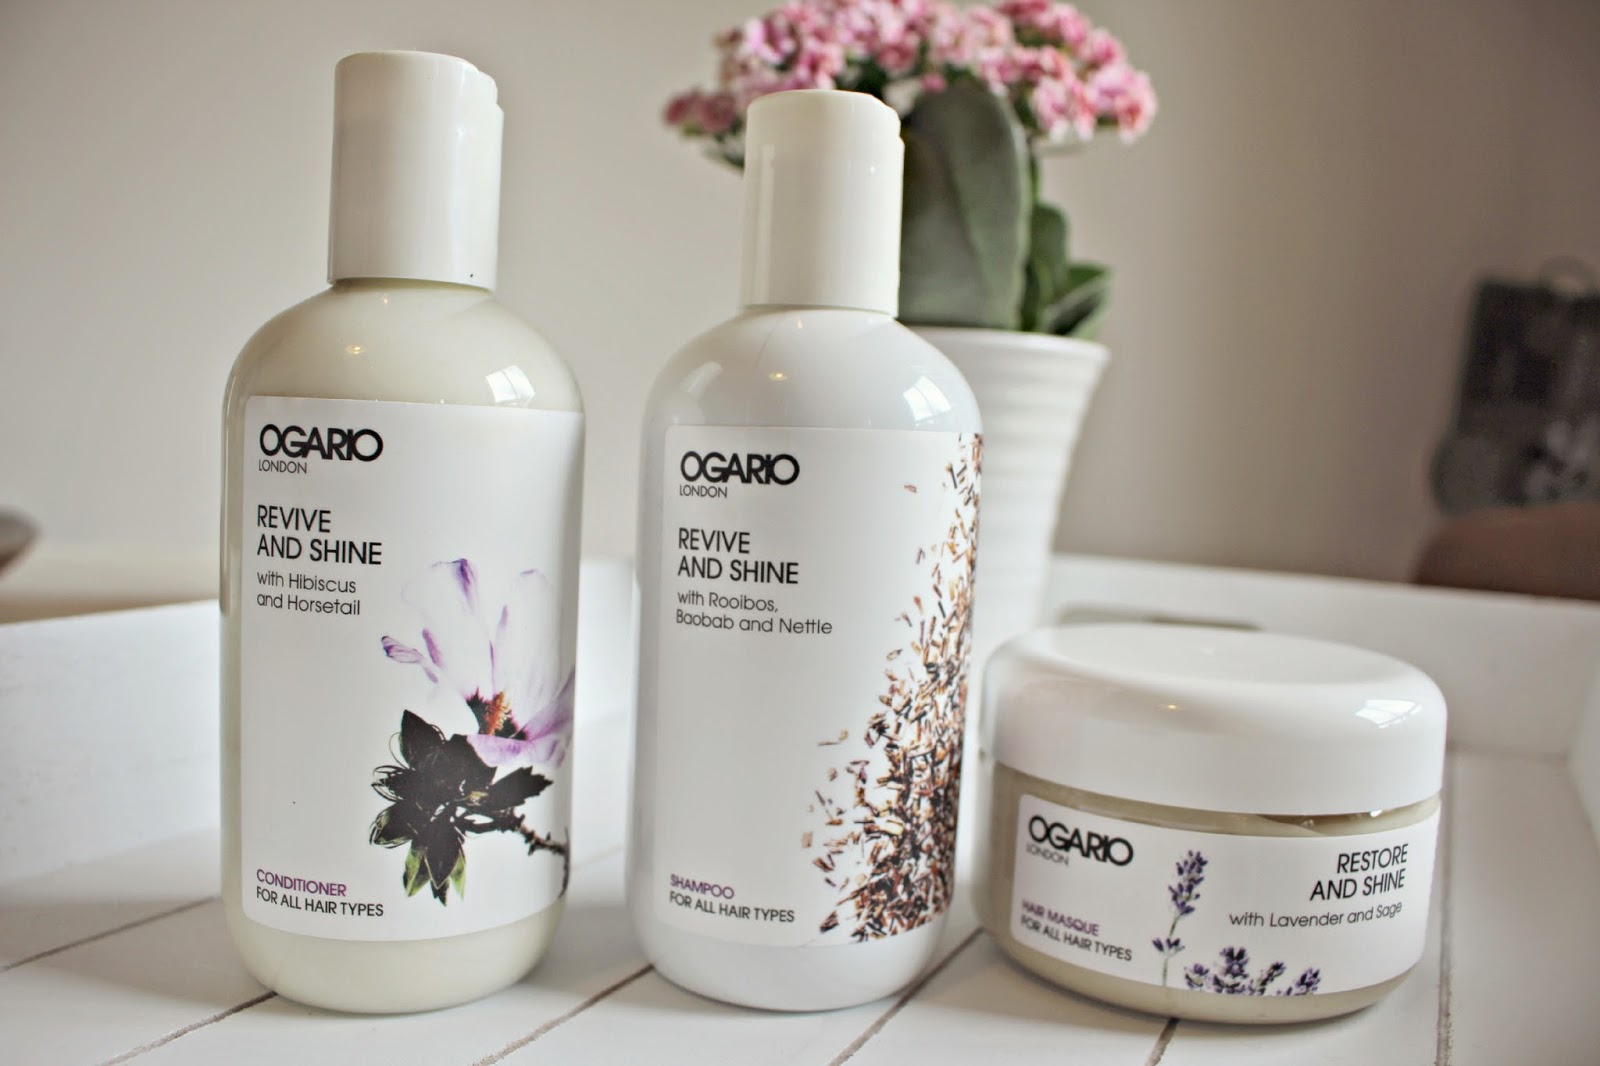 Getting Glossy with Ogario Revive & Shine - Fashion Mumblr